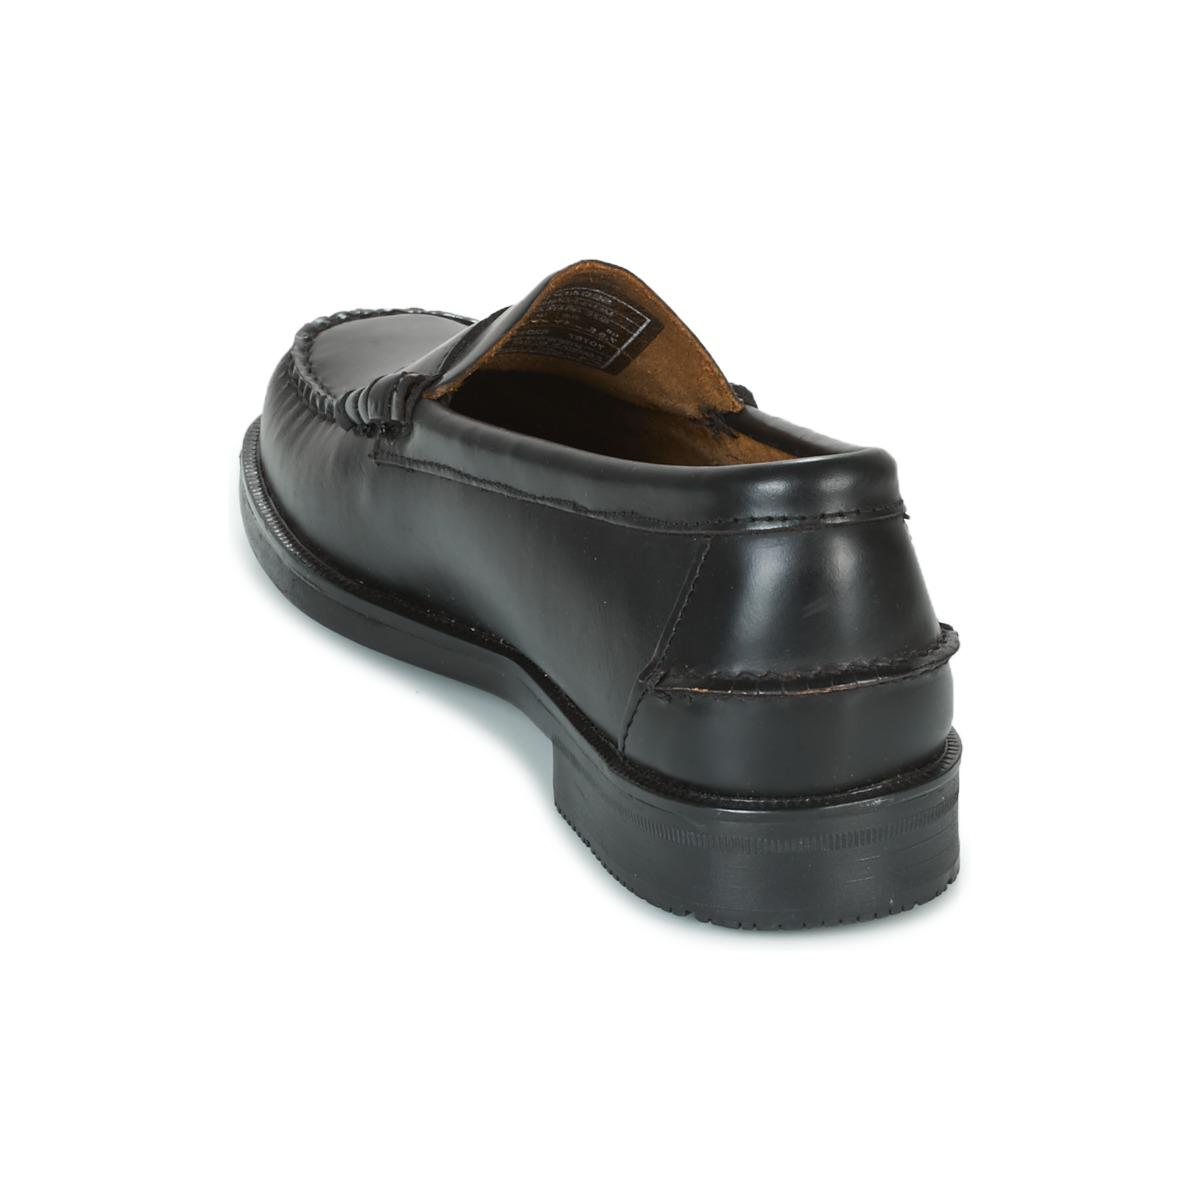 Sebago Leather Grant Loafers / Casual Shoes in Black for Men